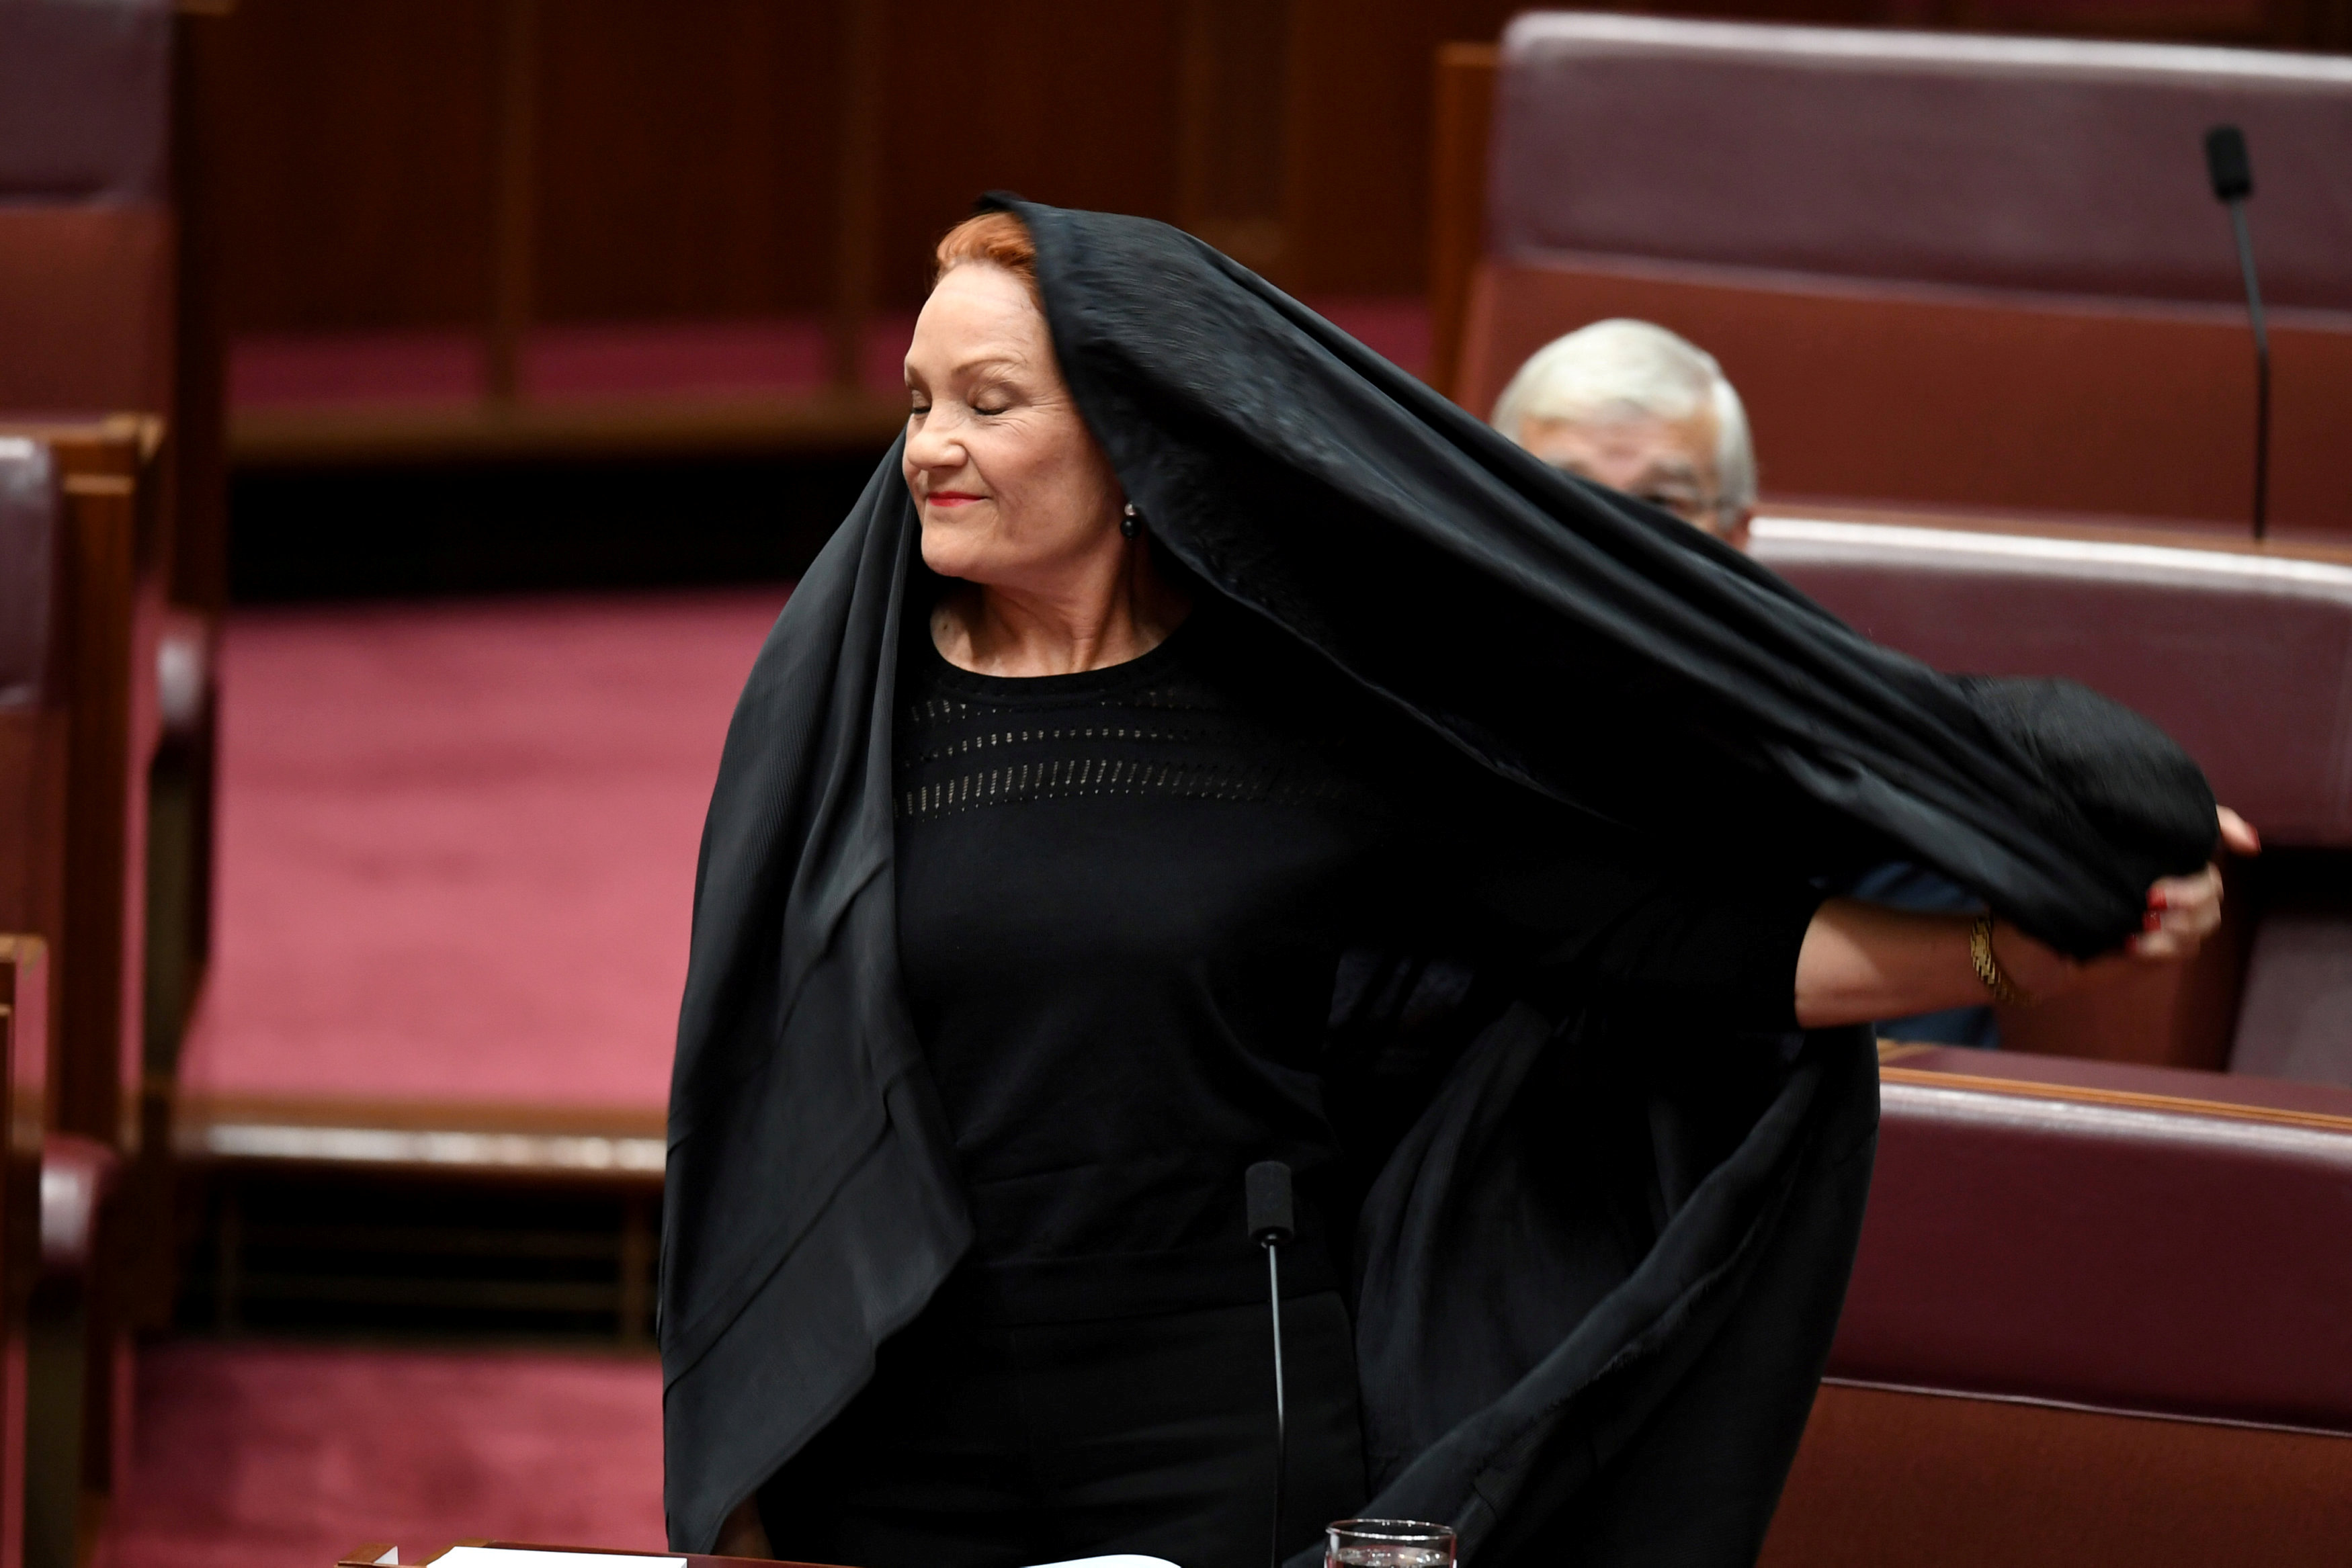 Australian One Nation party leader, Senator Pauline Hanson pulls off a burqa in the Senate chamber at Parliament House in Canberra, Australia, August 17, 2017.  AAP/Mick Tsikas/via REUTERS